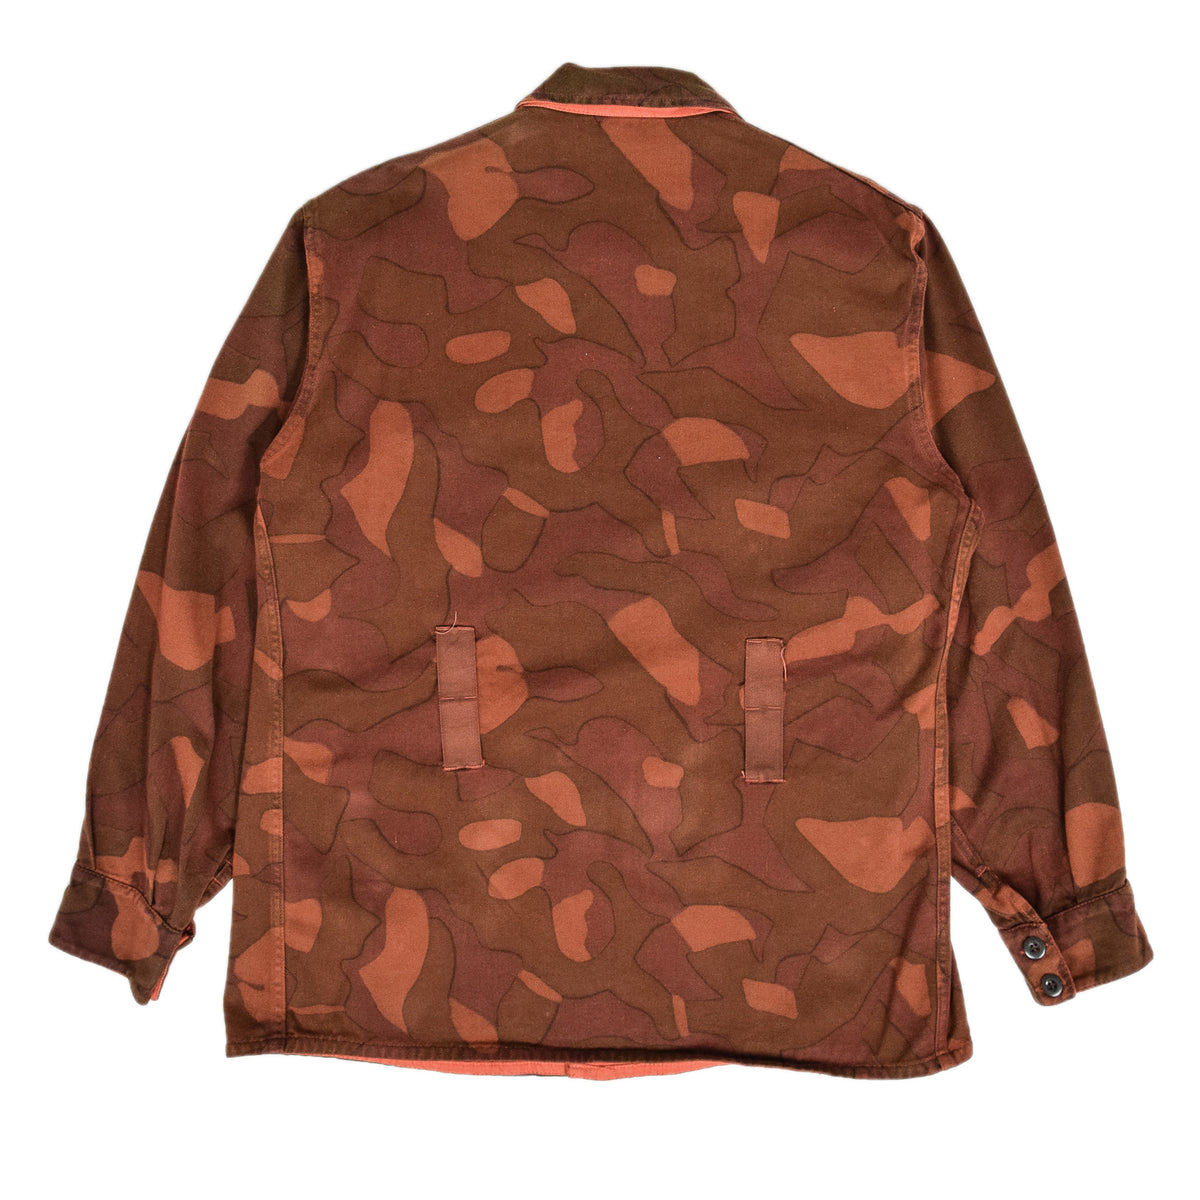 Vintage 60s Military Finnish Army Orange Overdyed Camo Mountain Jacket L / XL back